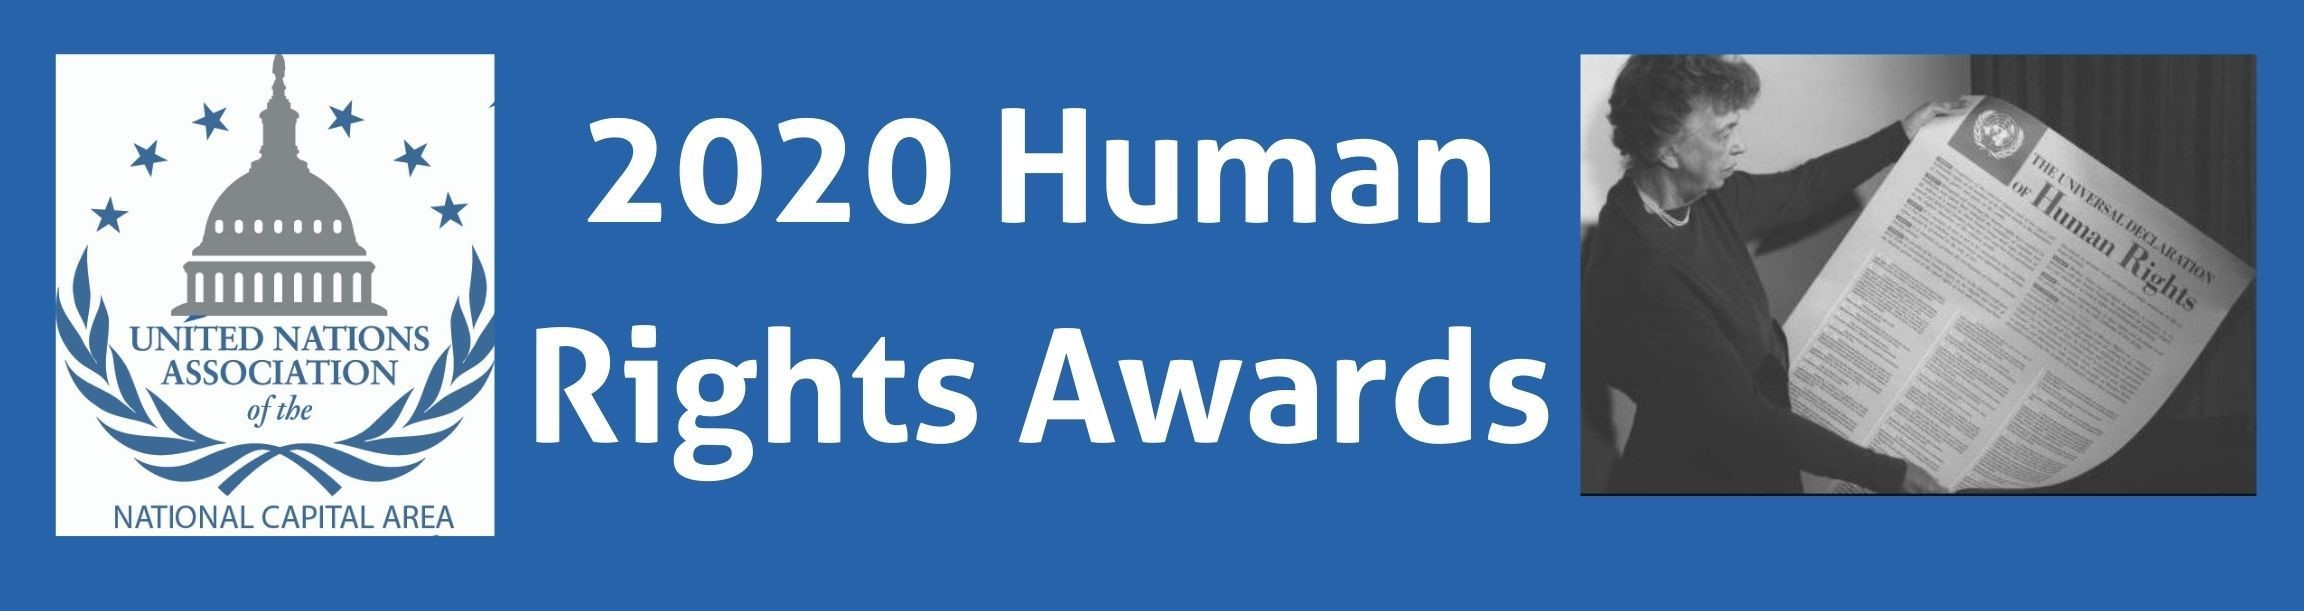 2020 Human Rights Awards – United Nations Association – National Capital Area (UNA-NCA)